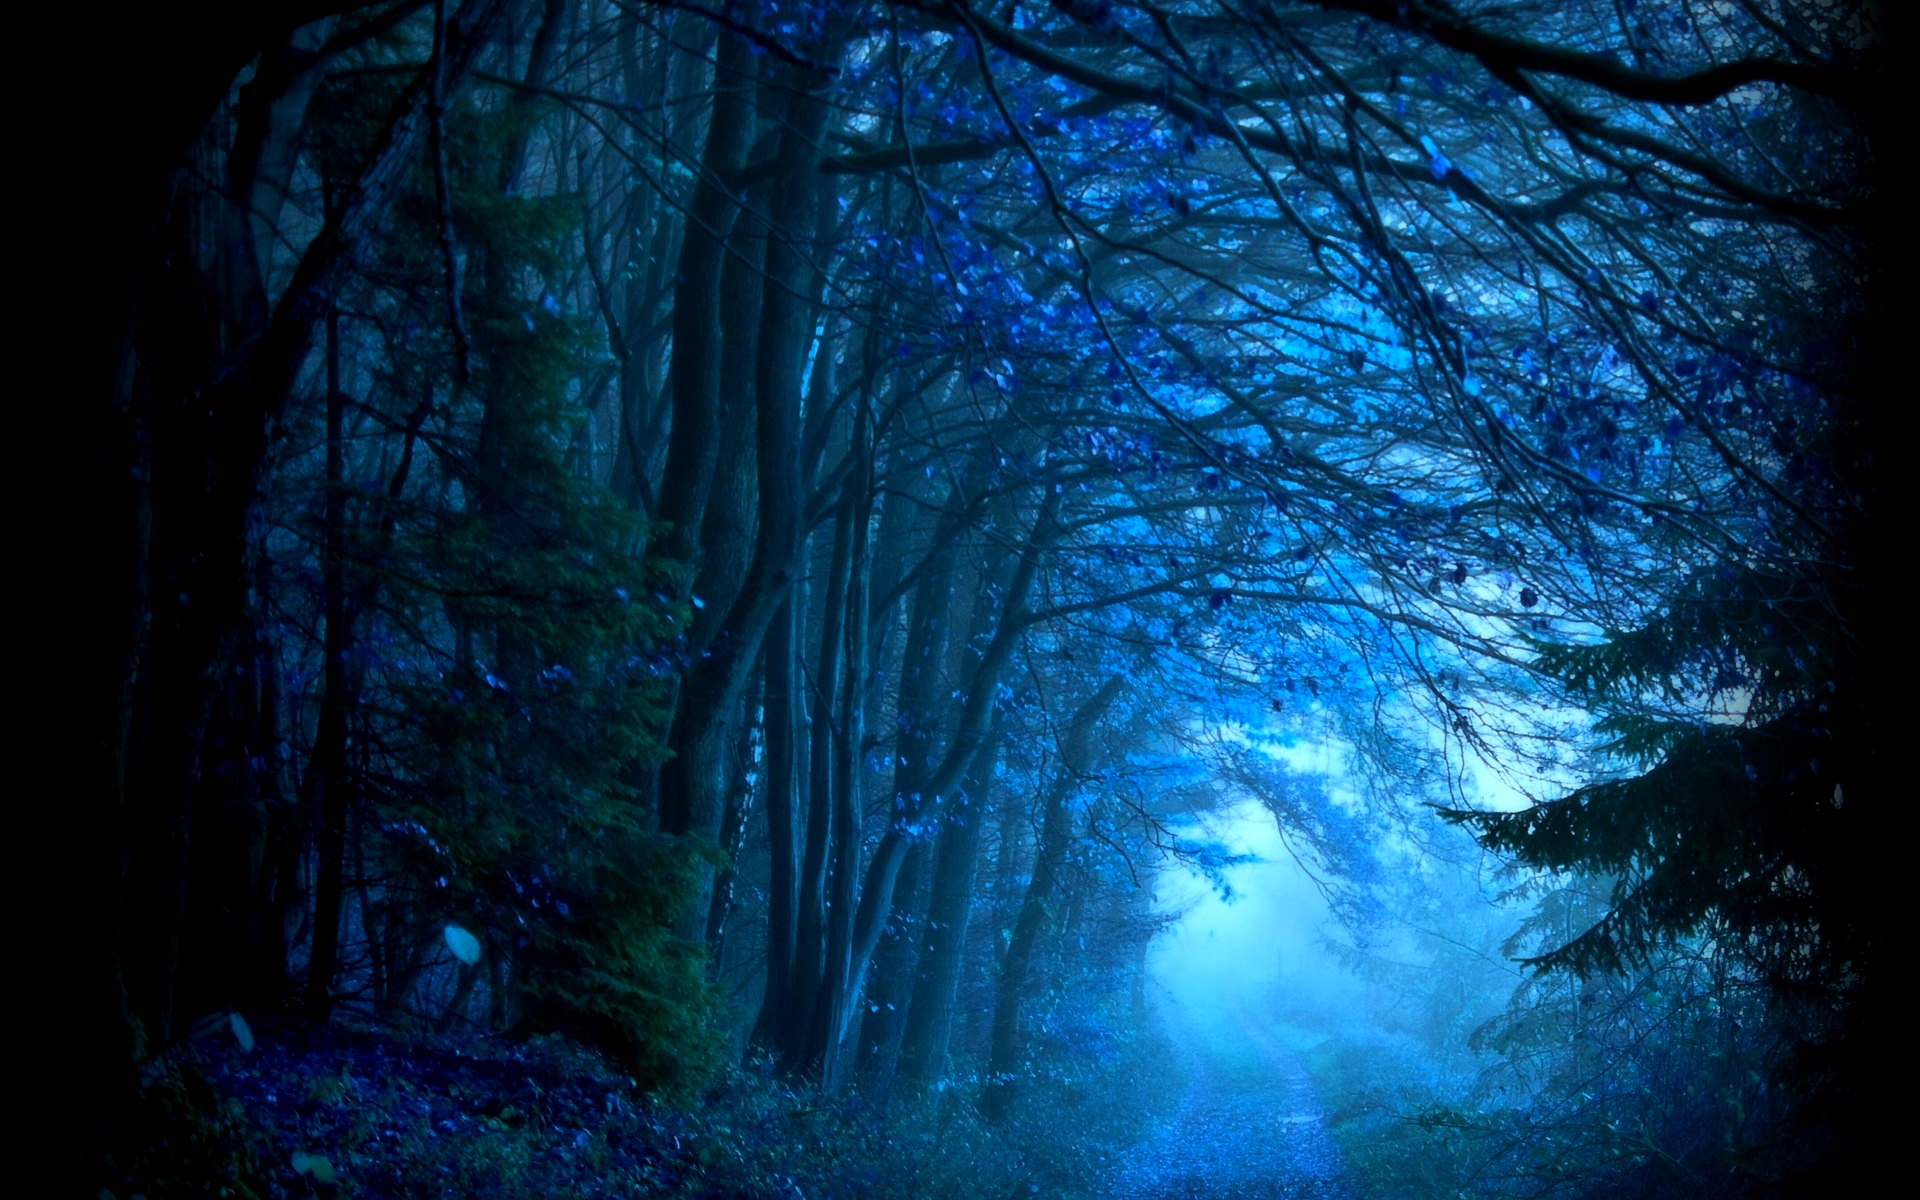 forest wallpaper night